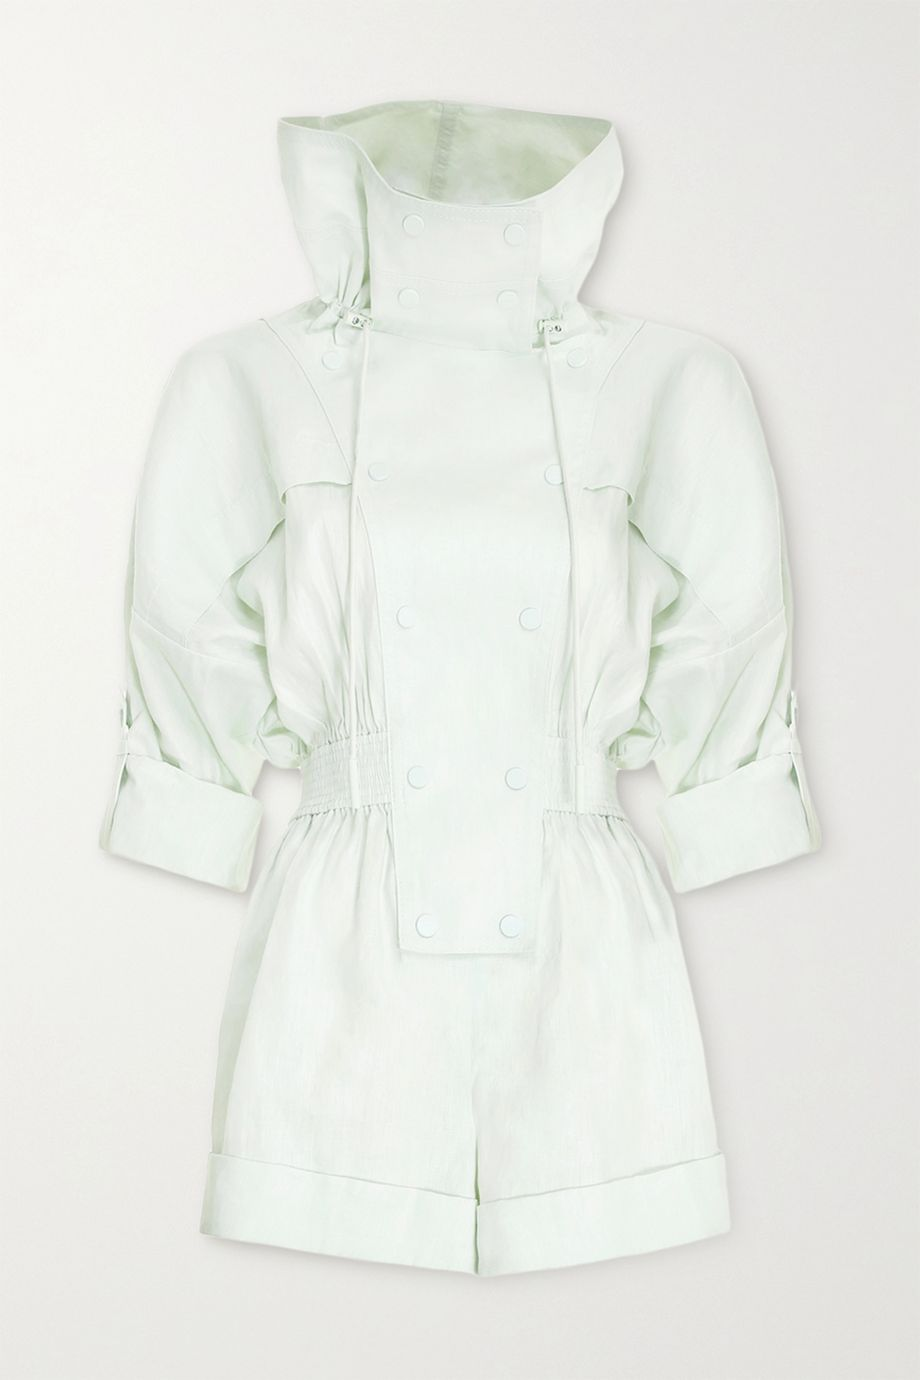 Zimmermann Glassy hooded linen playsuit